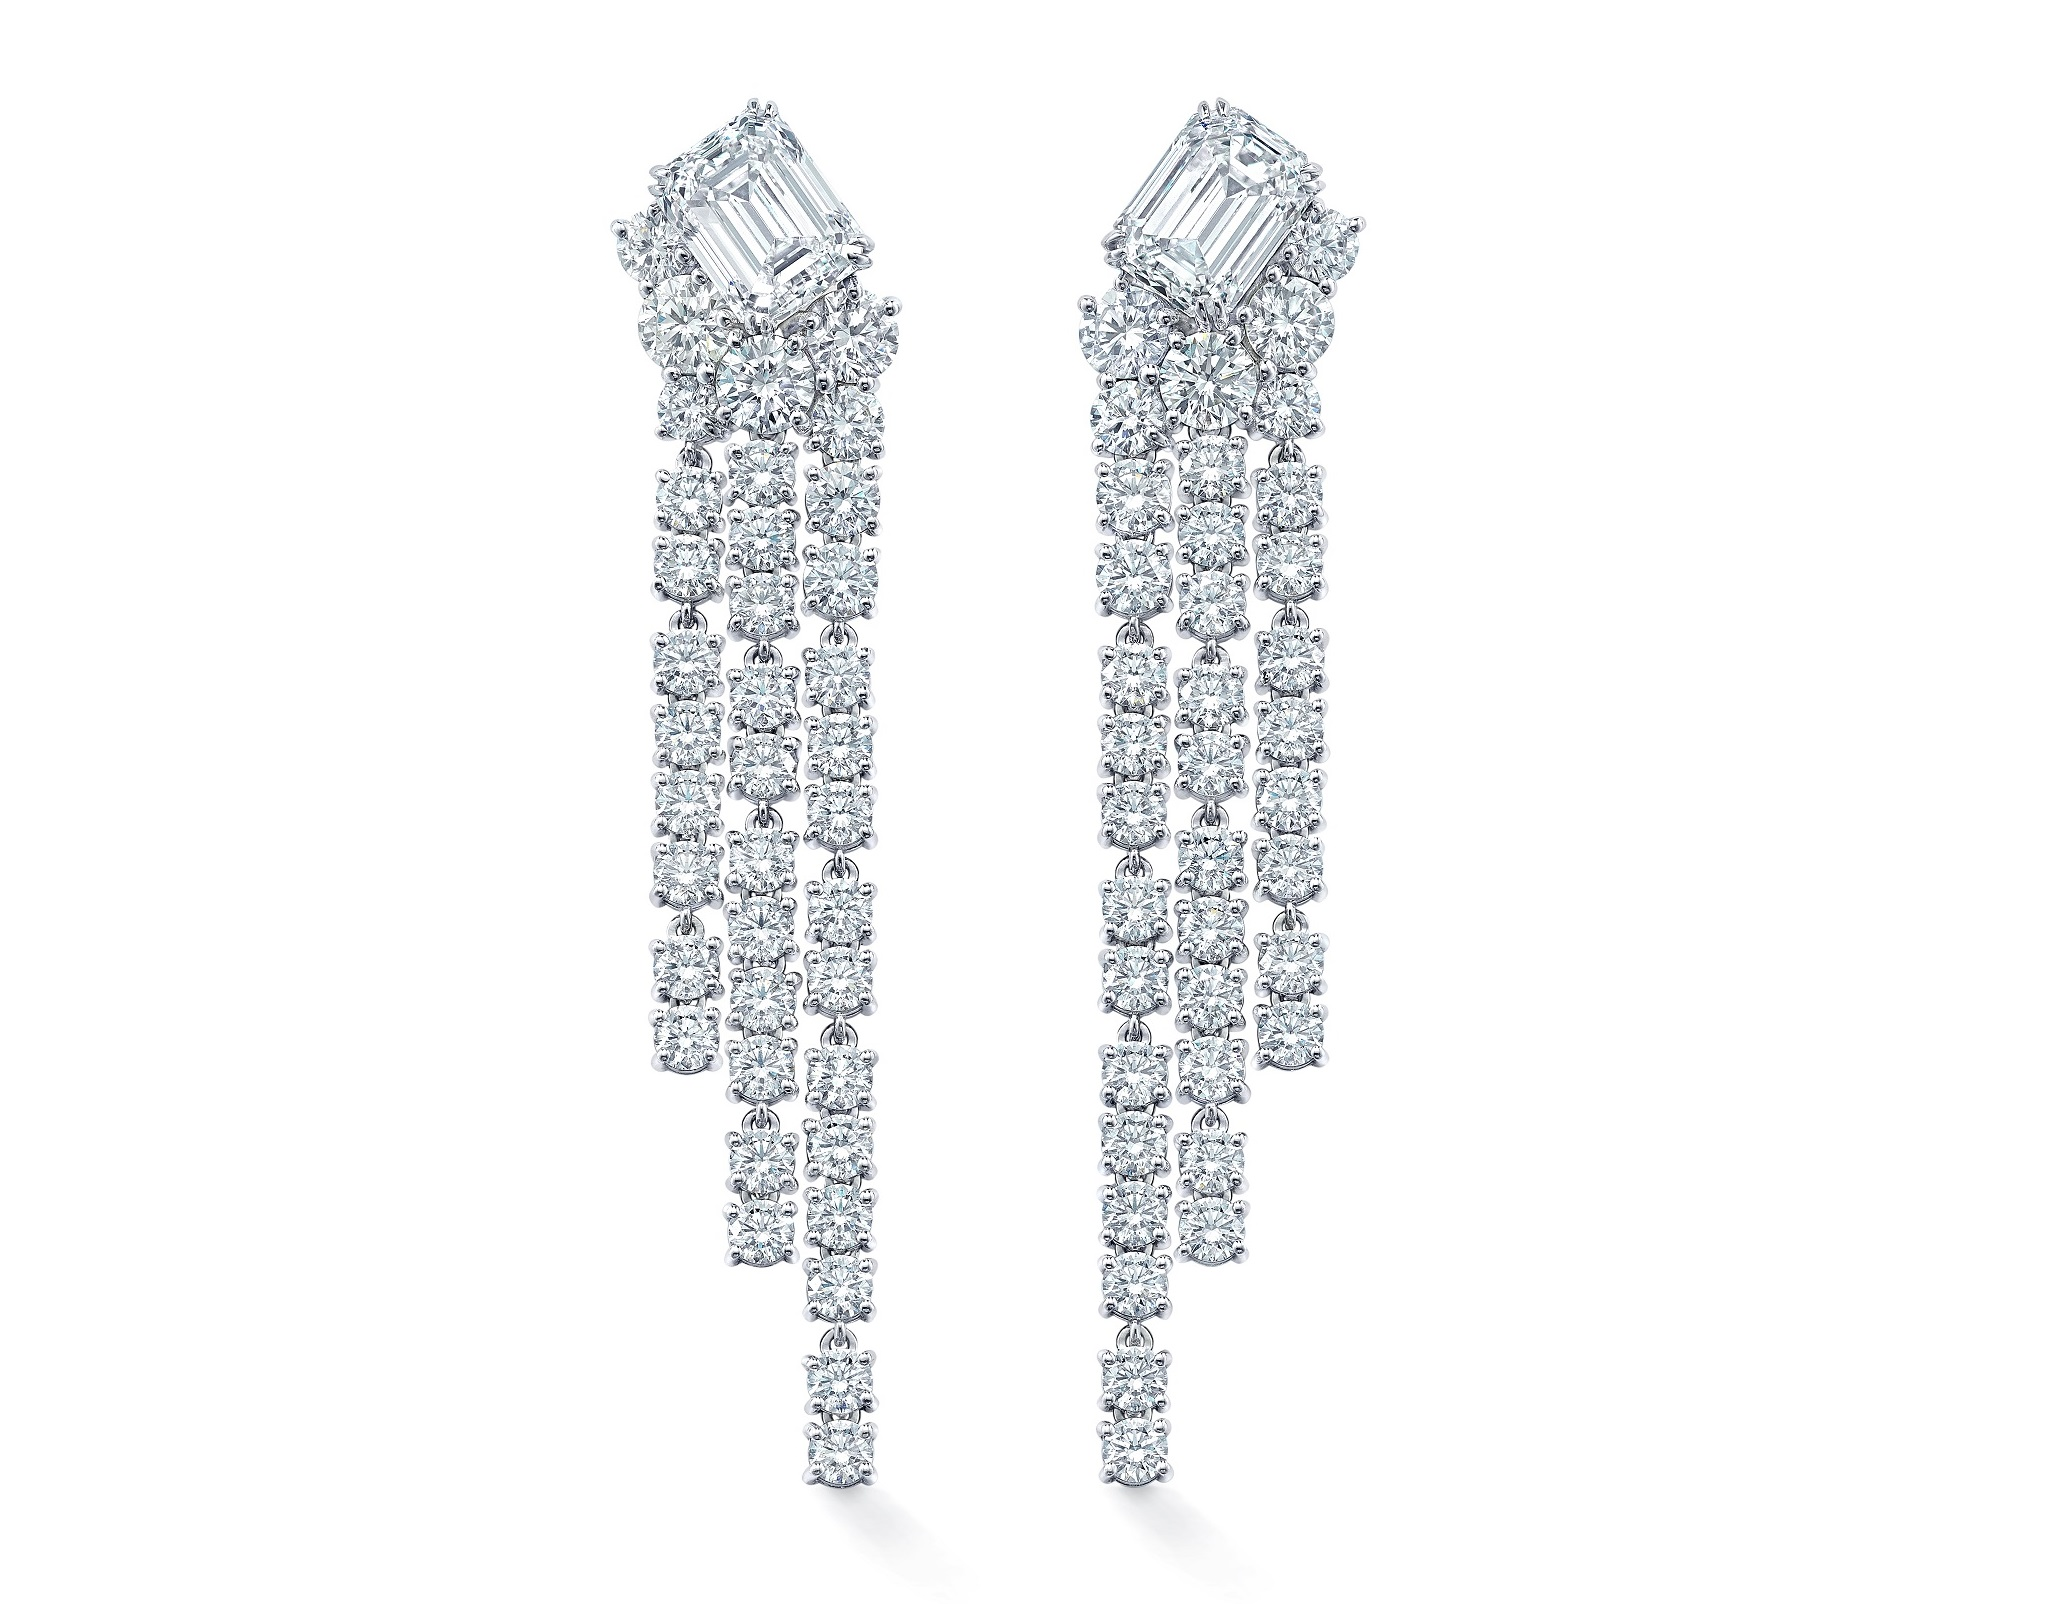 Mandy Moore, Viola Davis Sparkle in Forevermark Diamonds at Annual Emmy Awards